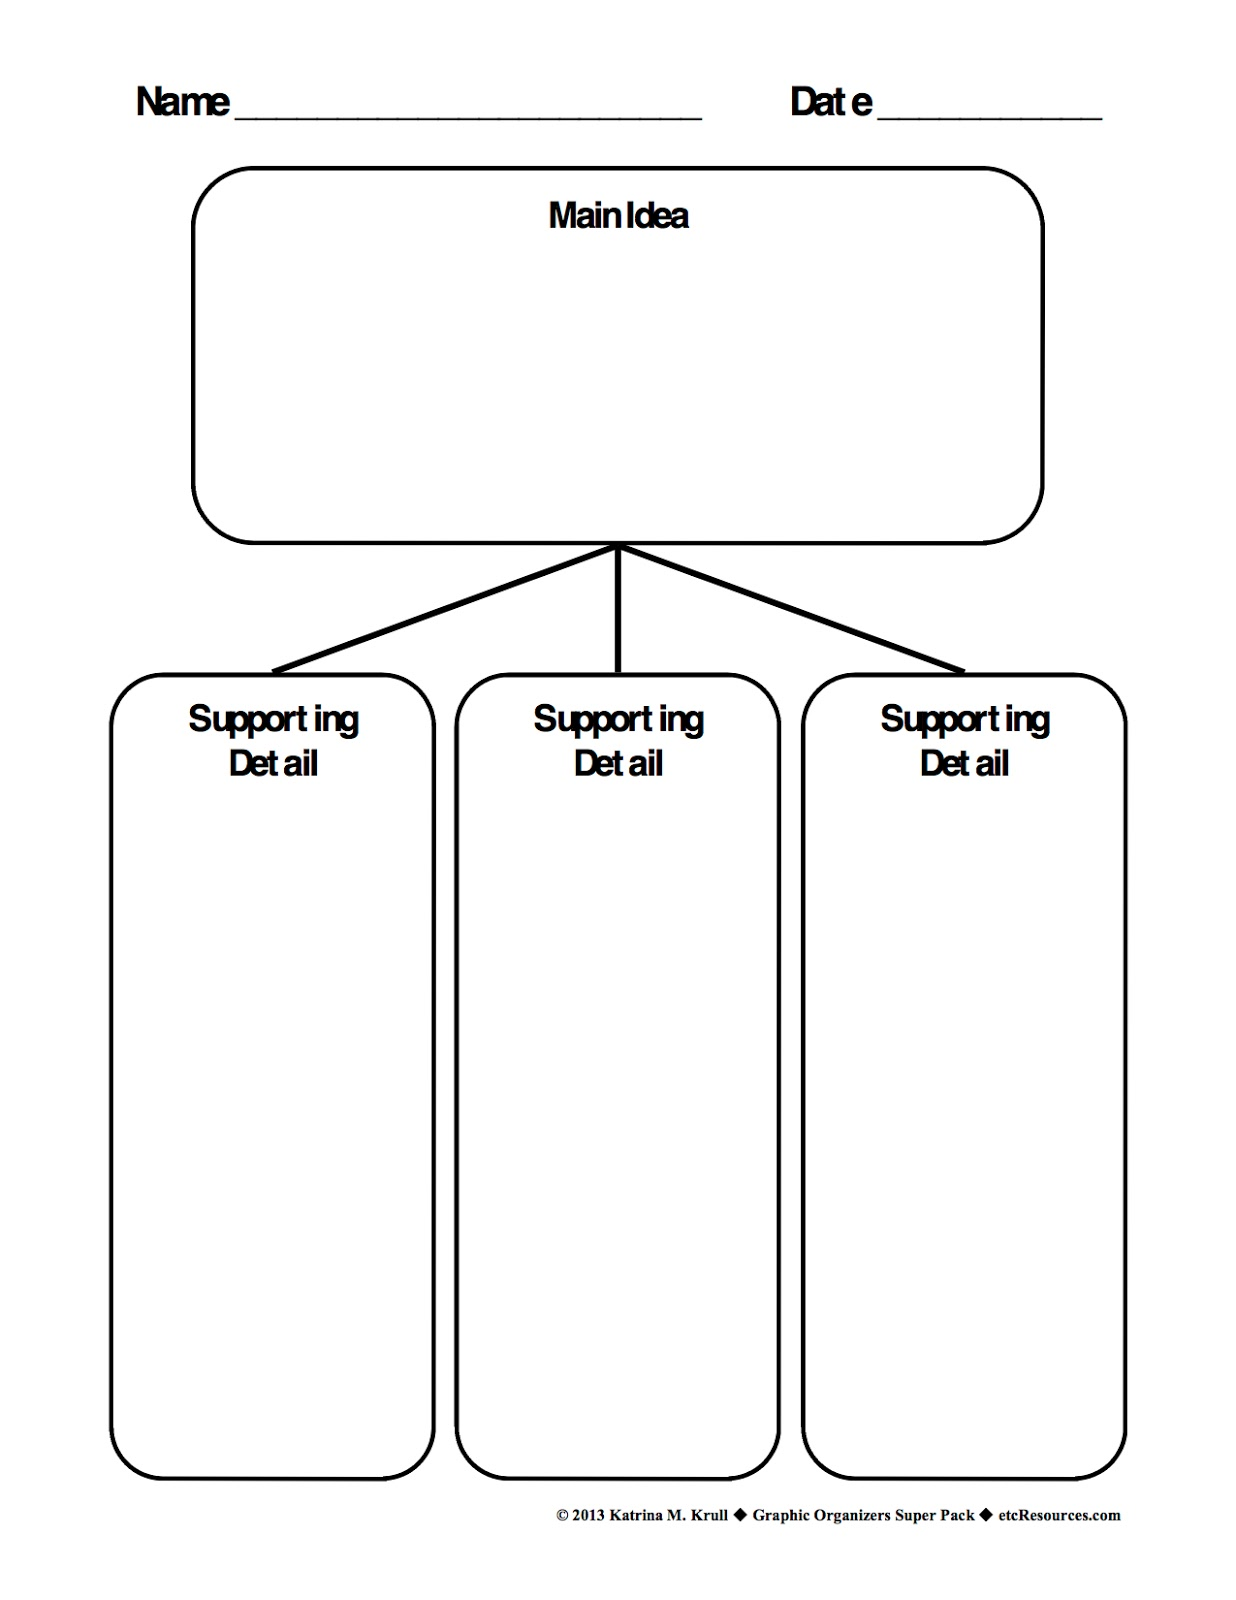 Exceptional image within main idea graphic organizer printable